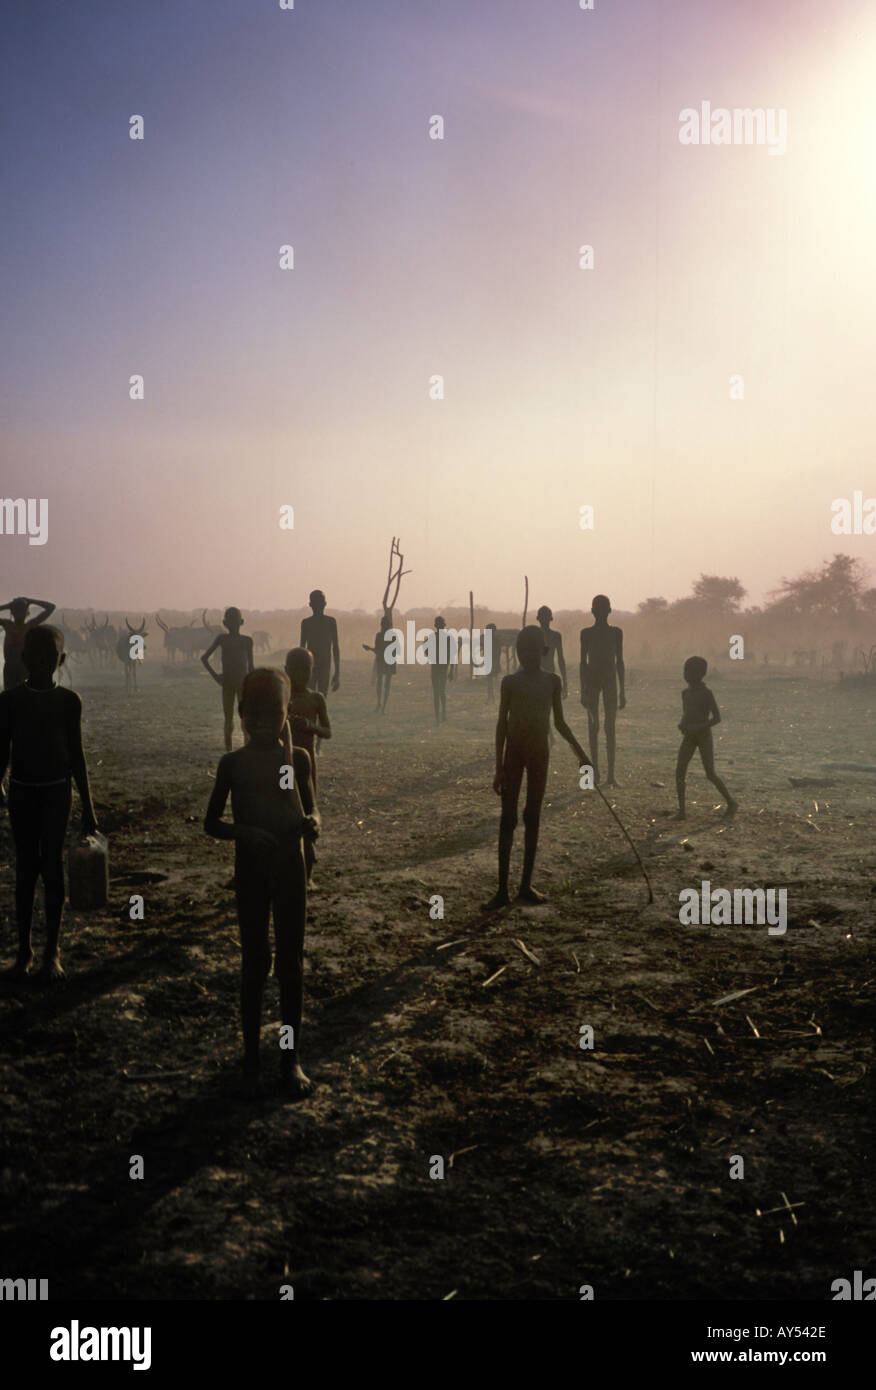 Cattlecamp and crowd of local people in southern Sudan, Africa - Stock Image